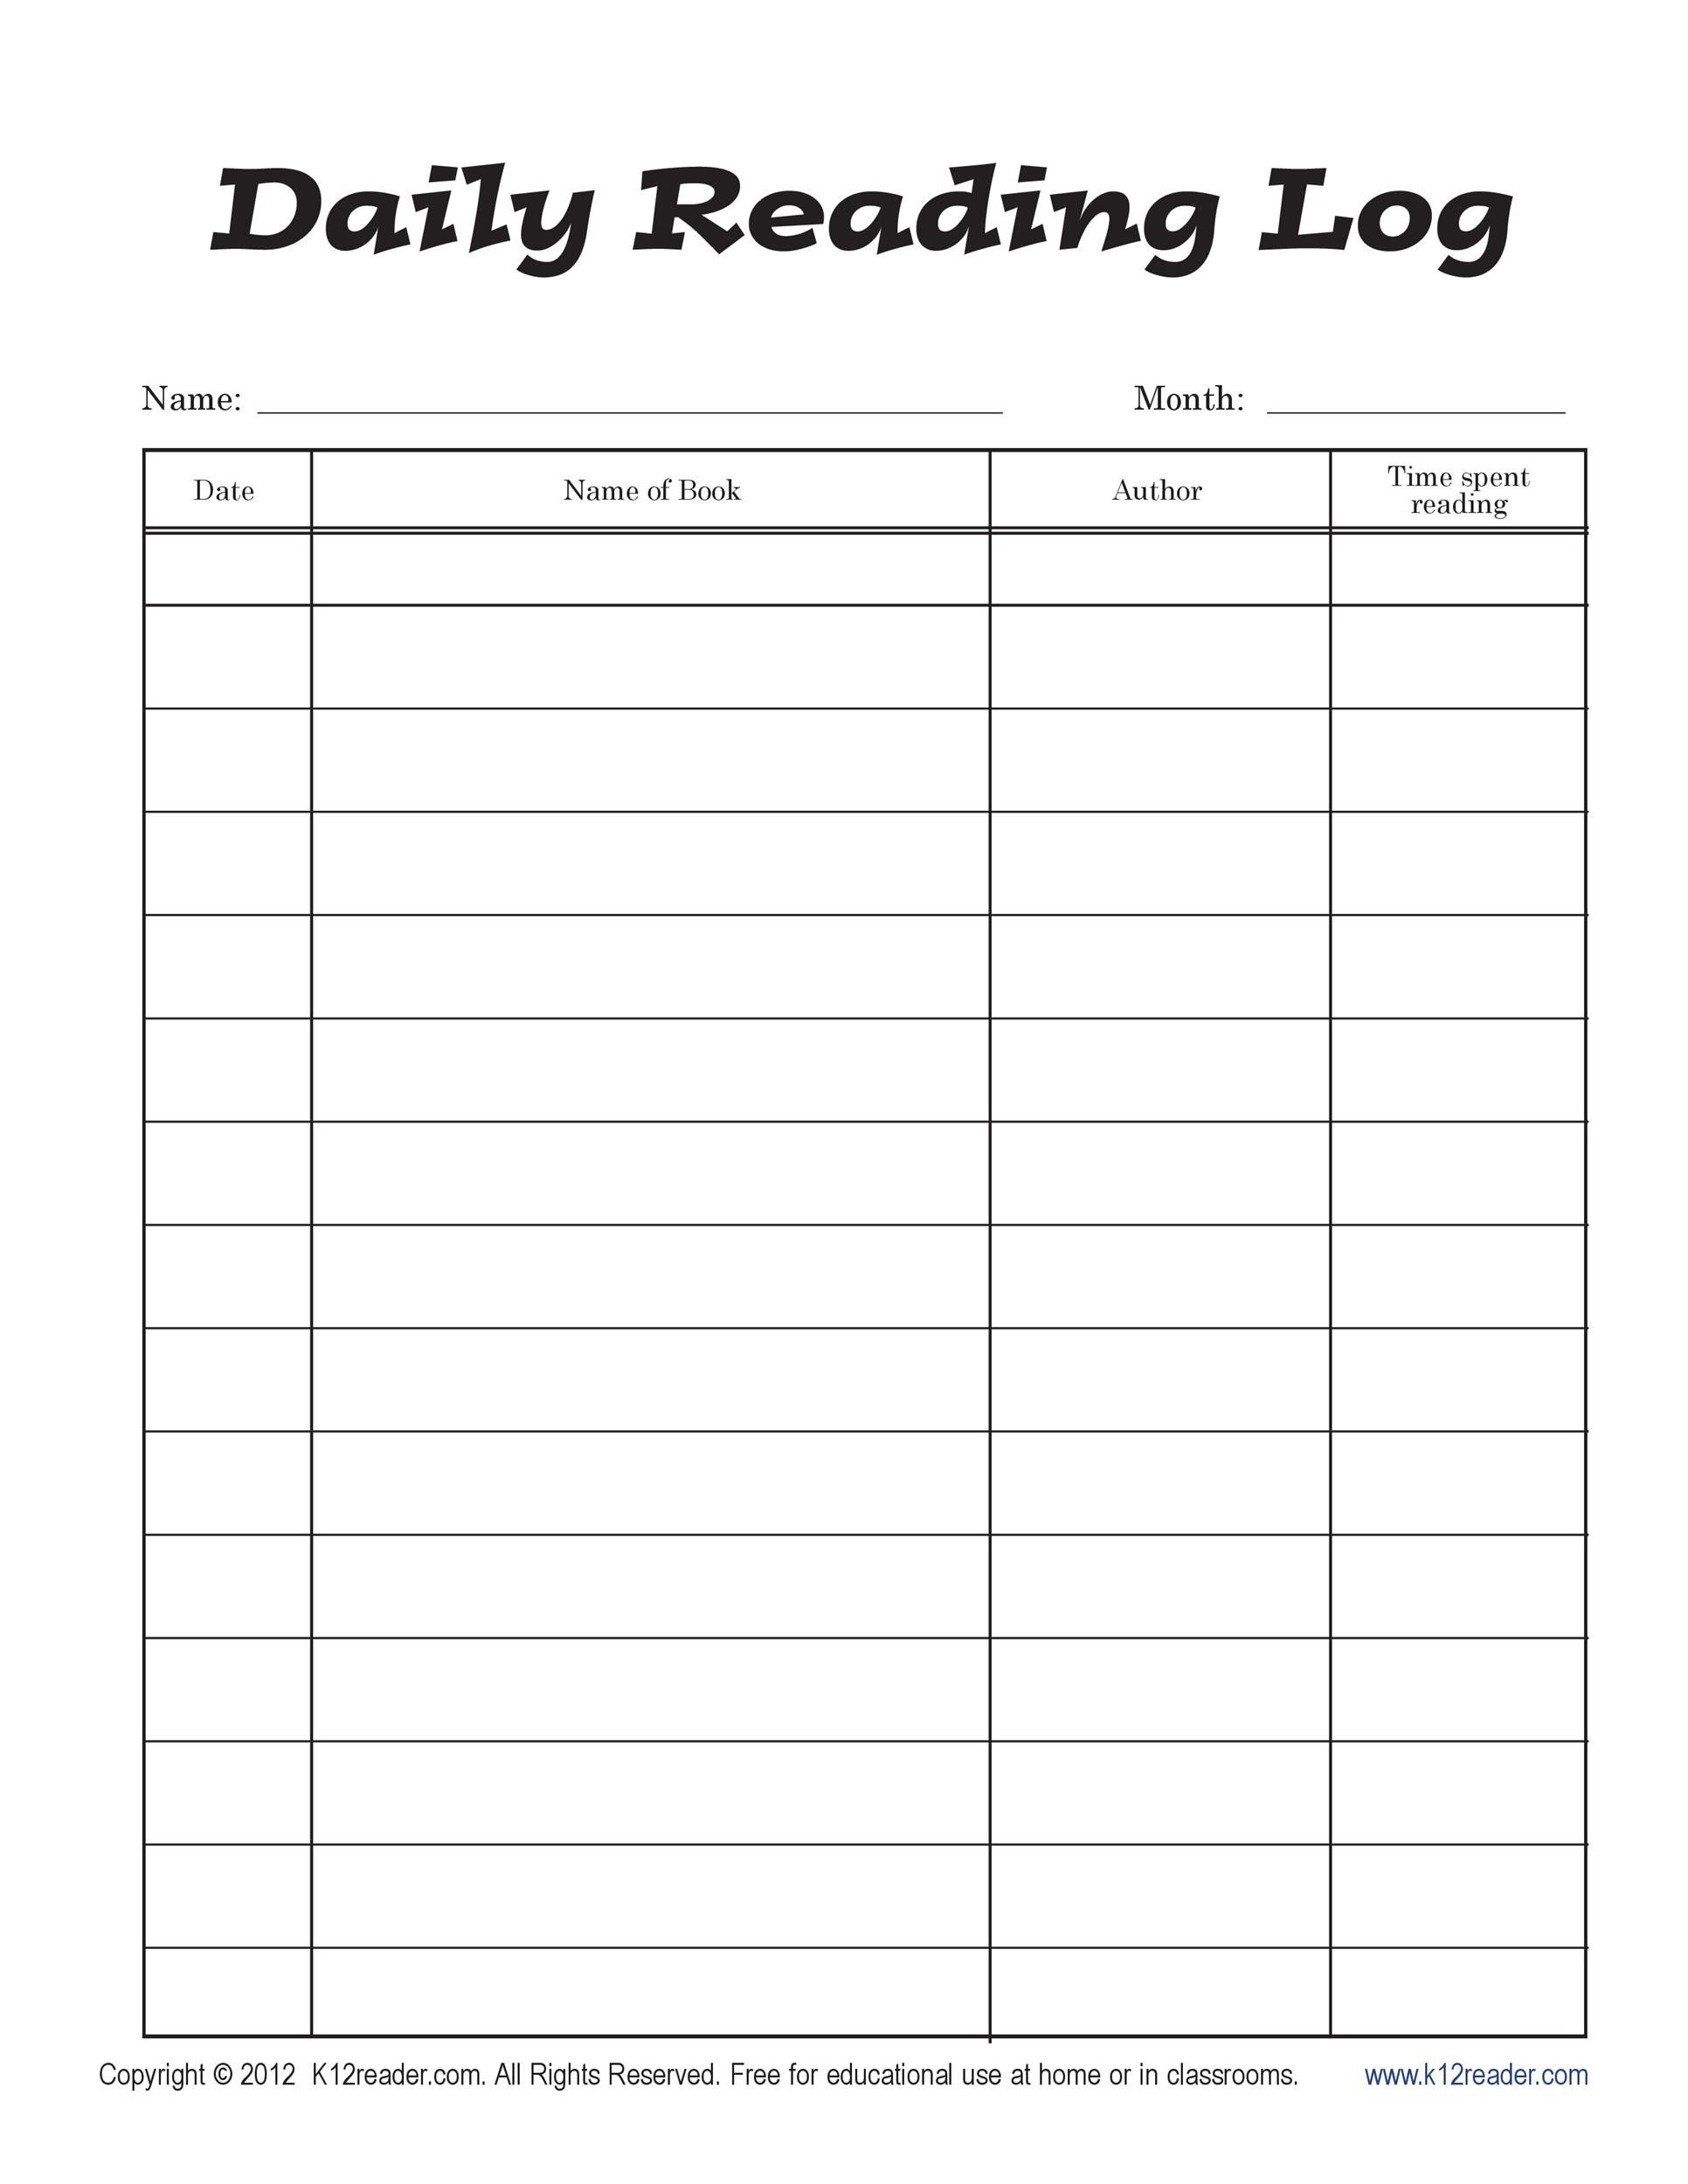 47 printable reading log templates for kids middle school adults